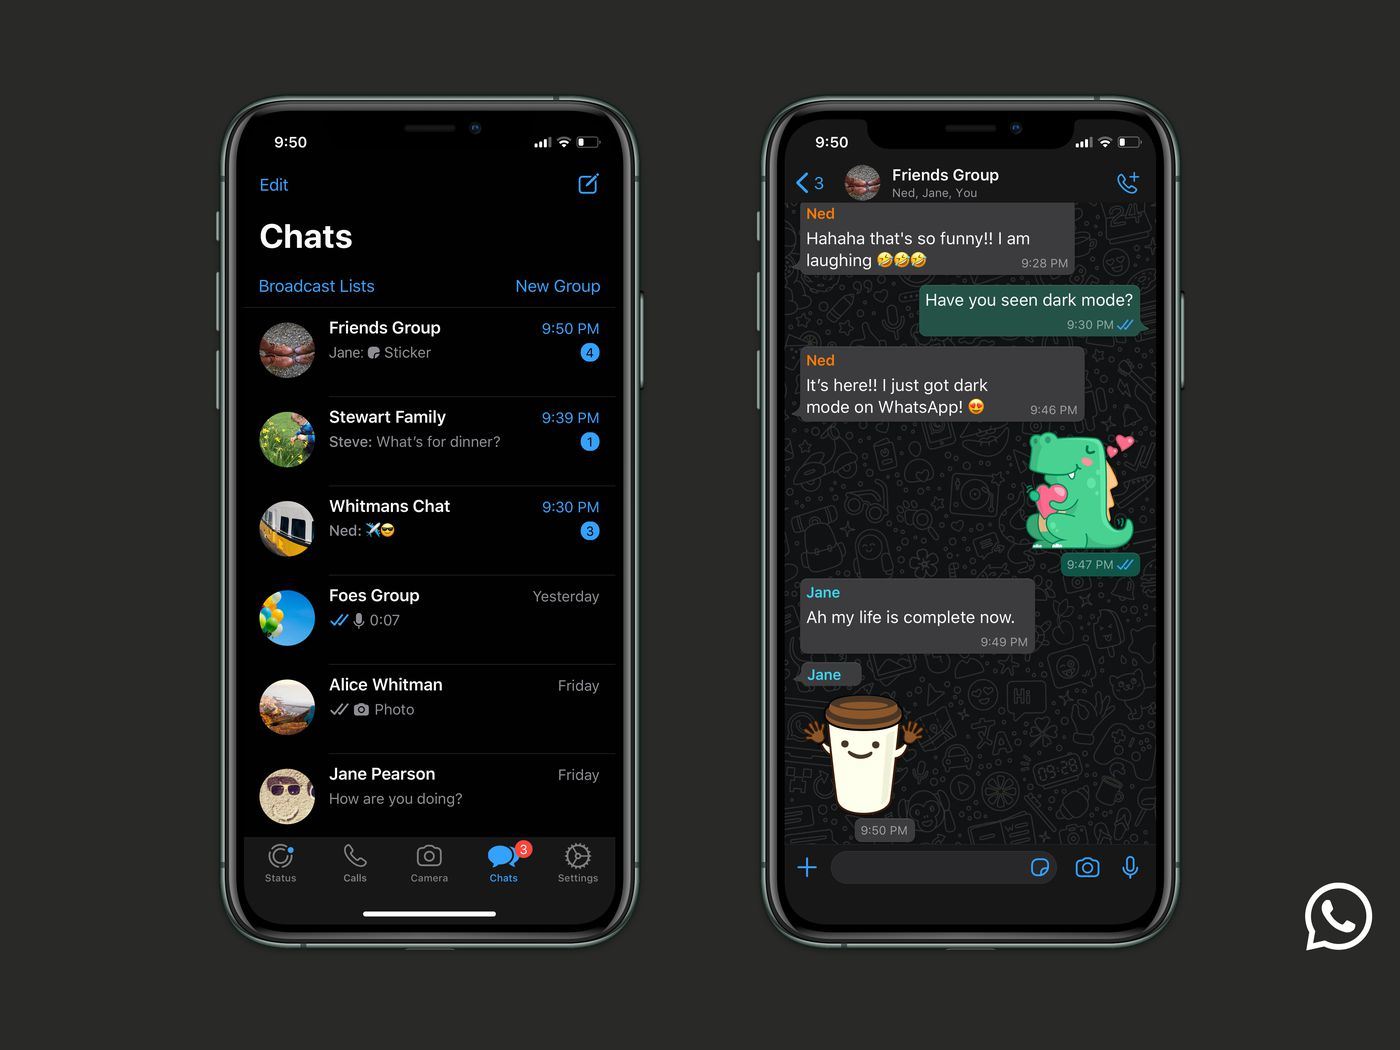 Whatsapp Dark Mode Now Available For Ios And Android The Verge